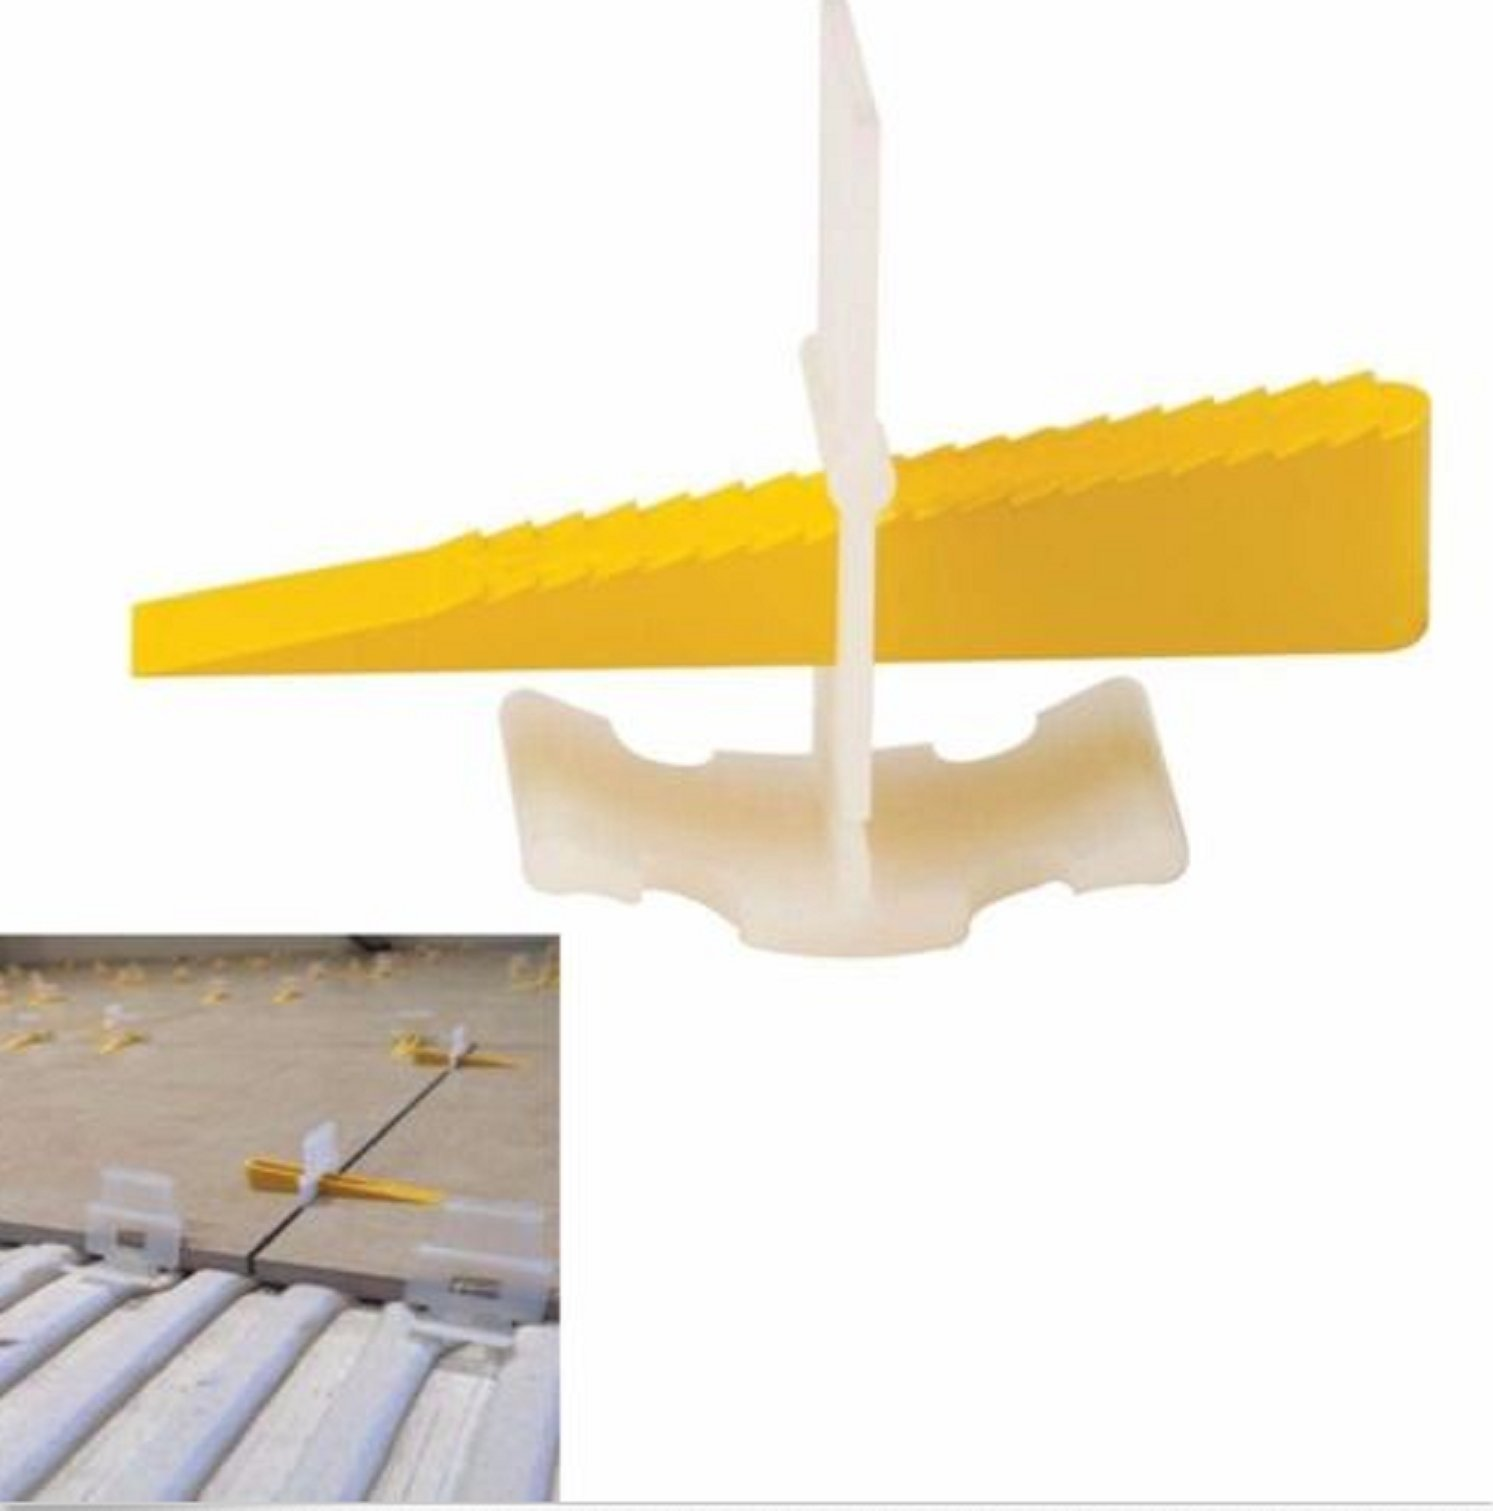 USA Premium Store 600 Tile Leveling System 400 Clips + 200 Wedges Tile Leveler Spacers Lippage